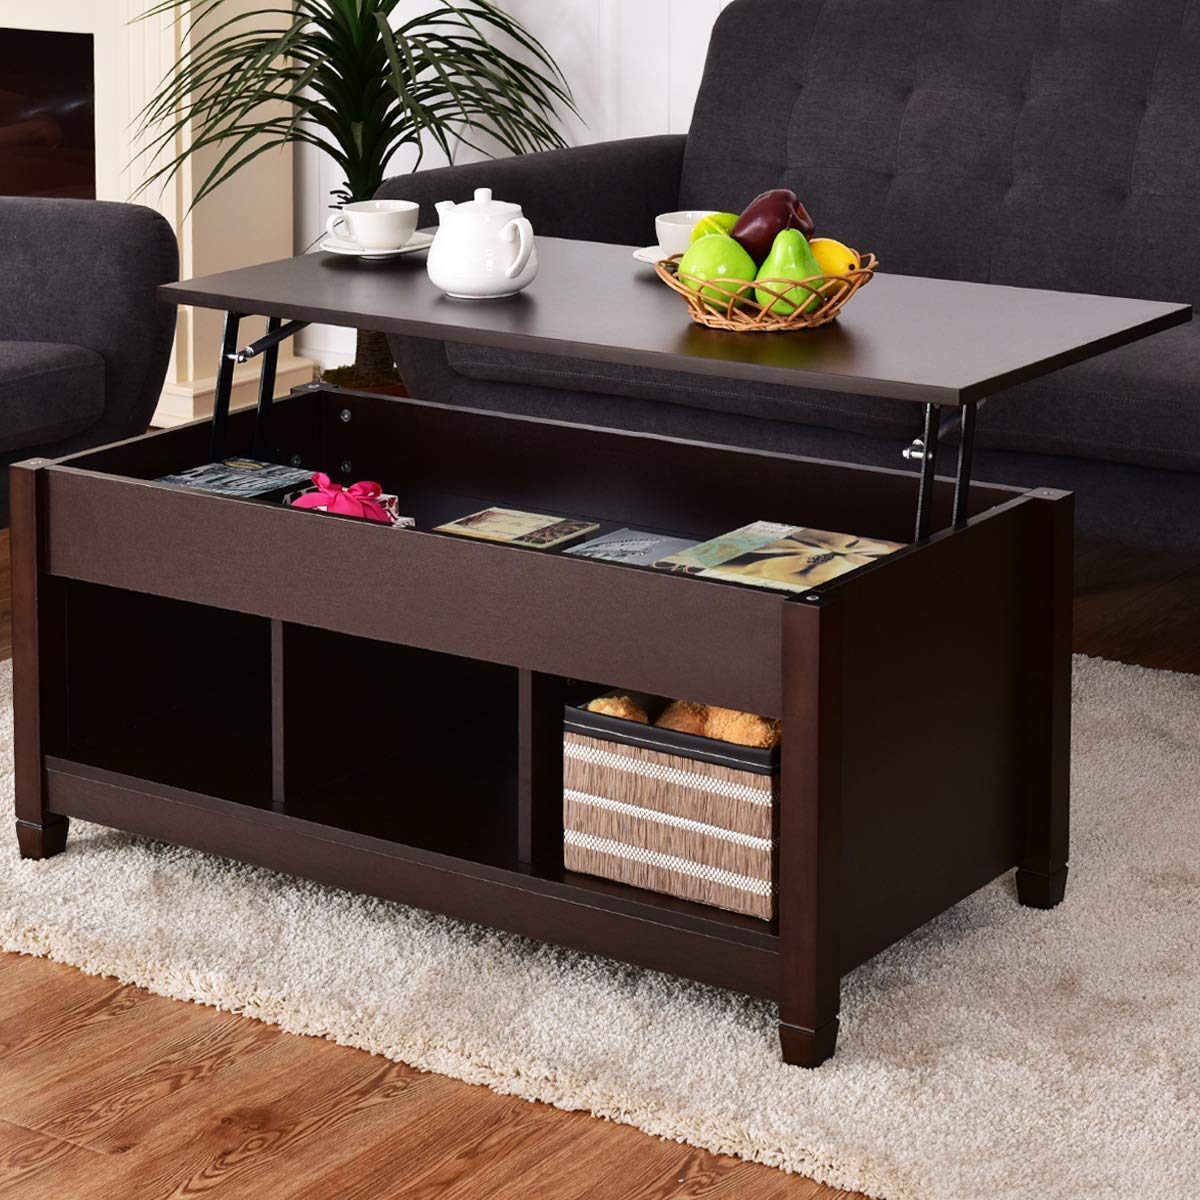 Solid Wood Coffee And End Tables For Sale: NEW MODERN COFFEE TABLE LIFT TOP END TABLE STORAGE